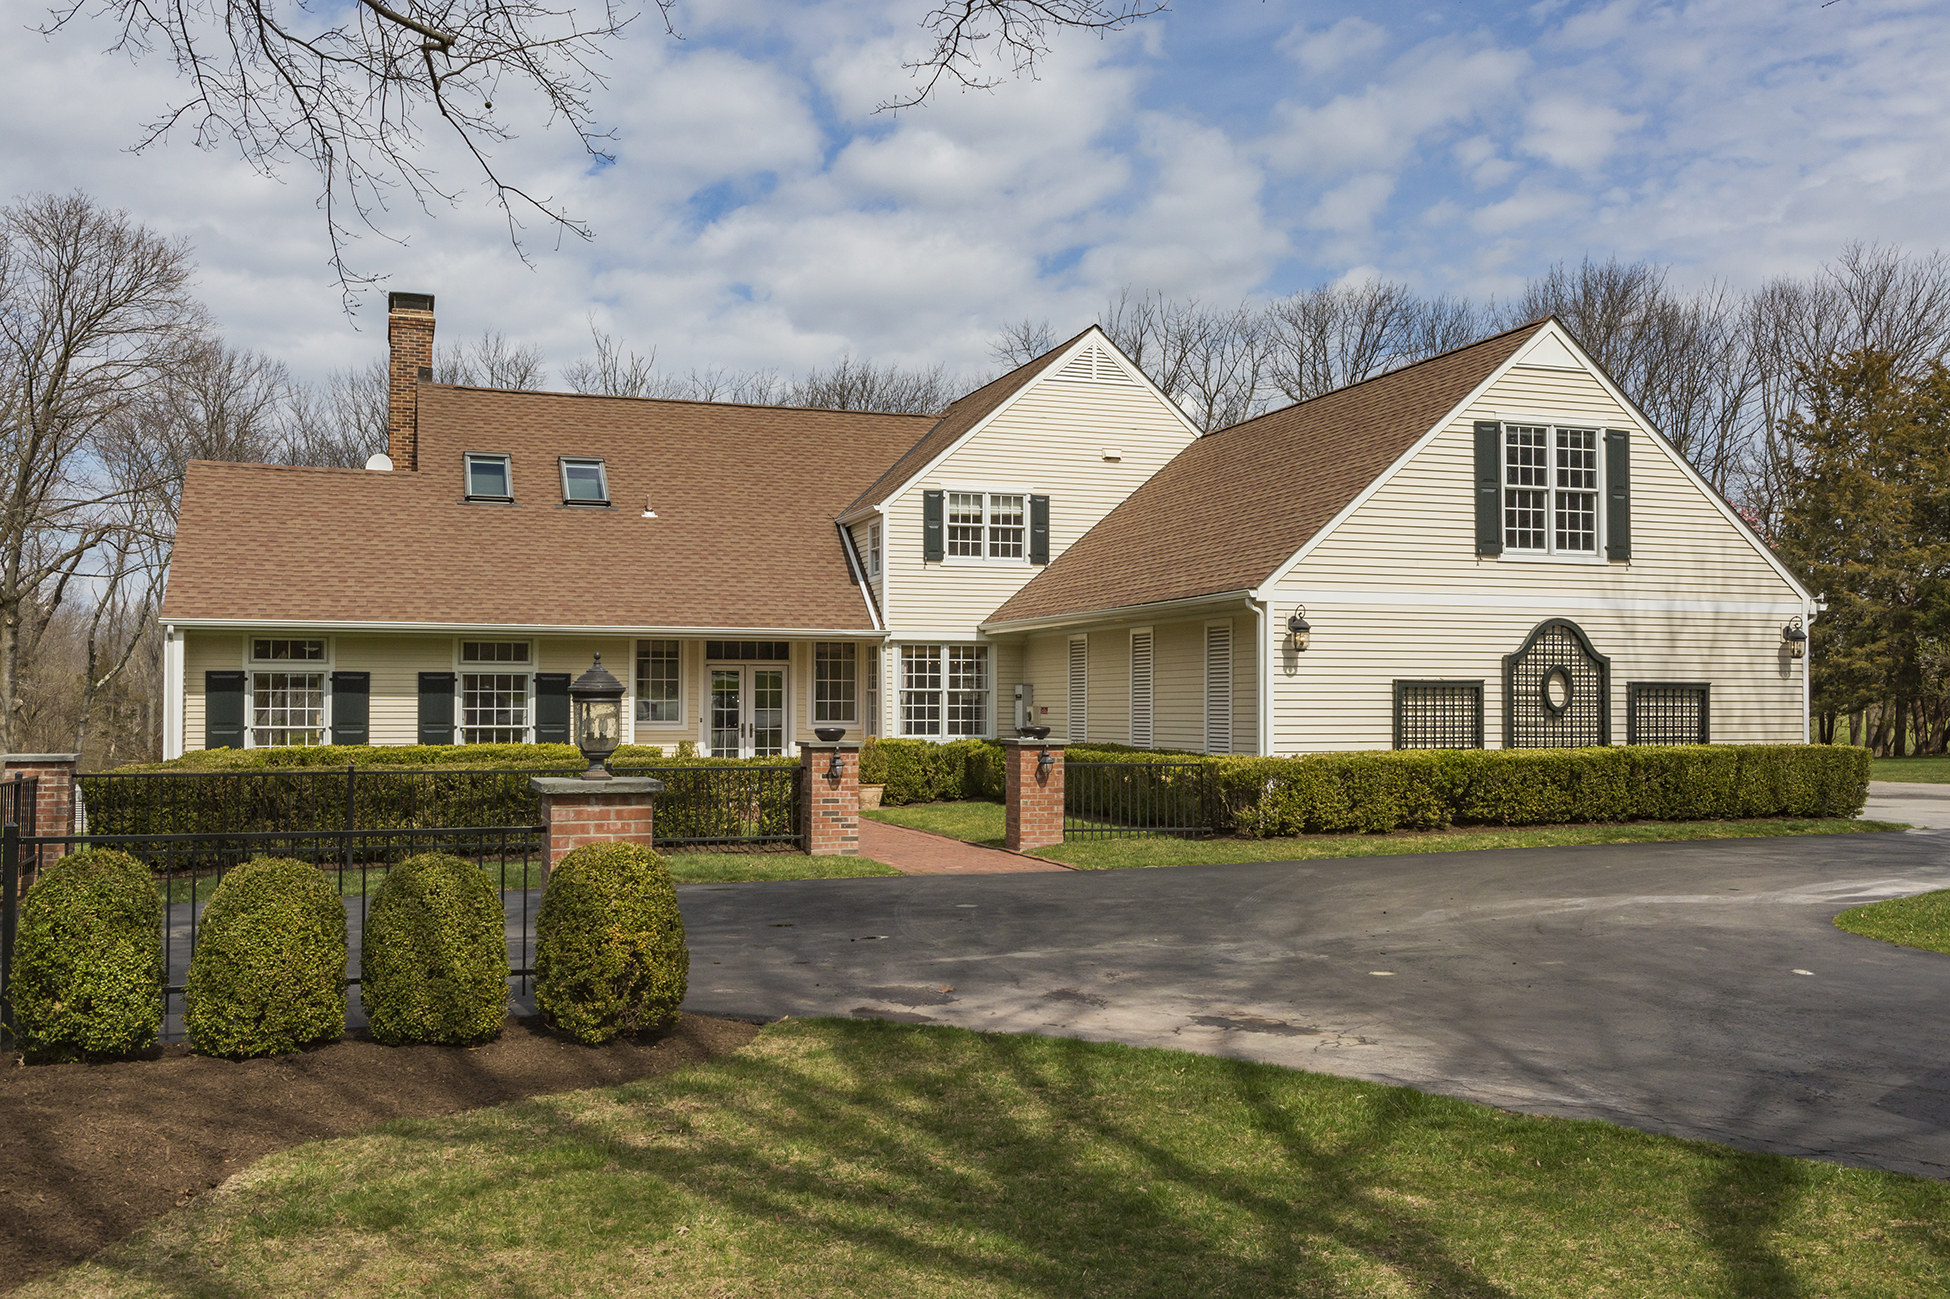 Single Family Home for Sale at Golfers & Non-golfers Will Appreciate The Serenity - Montgomery Township 46 Duncan Lane Skillman, New Jersey 08558 United States